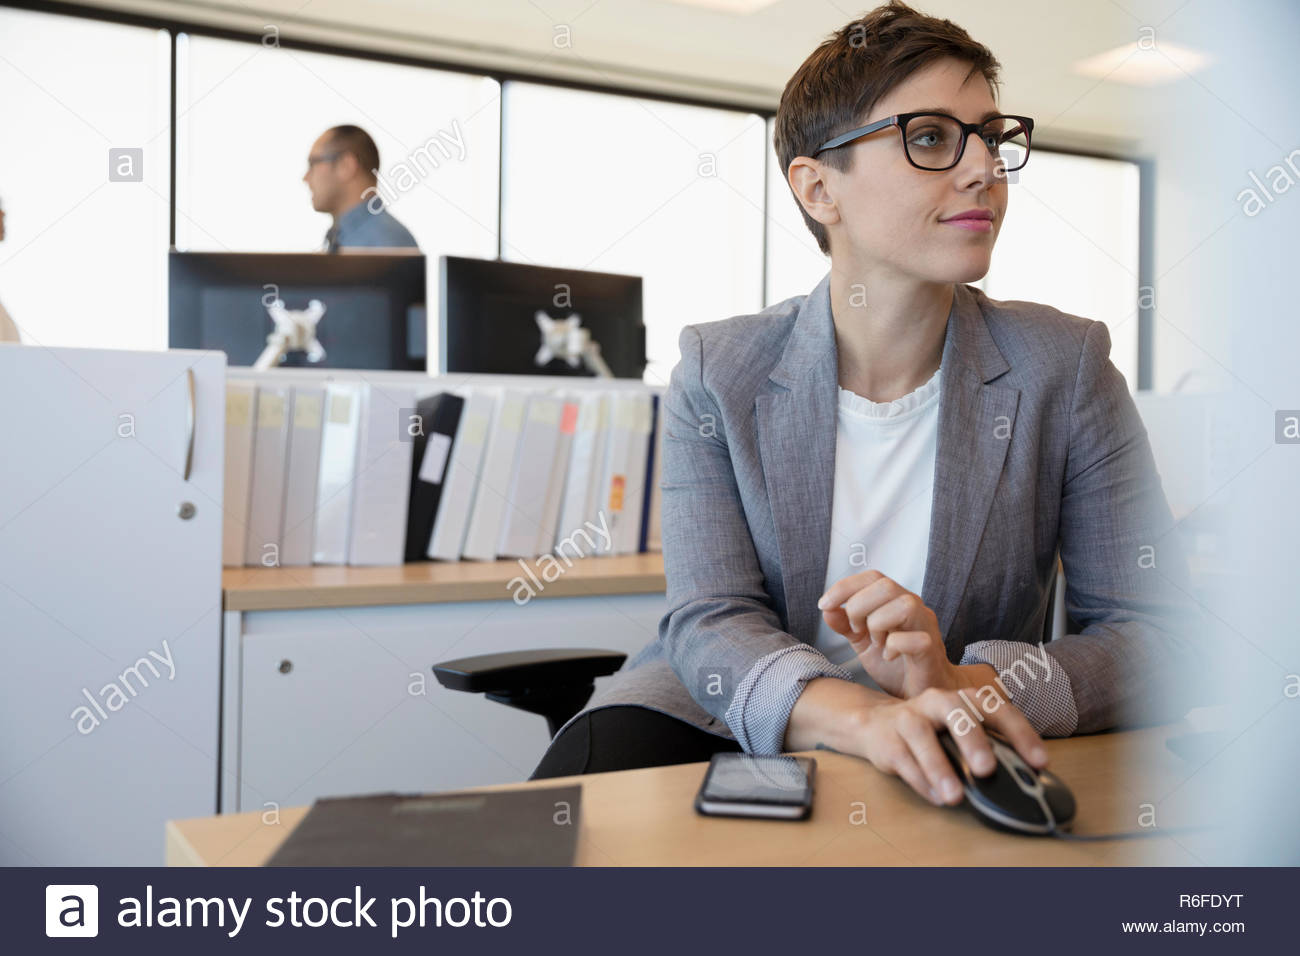 Businesswoman working in office cubicle - Stock Image